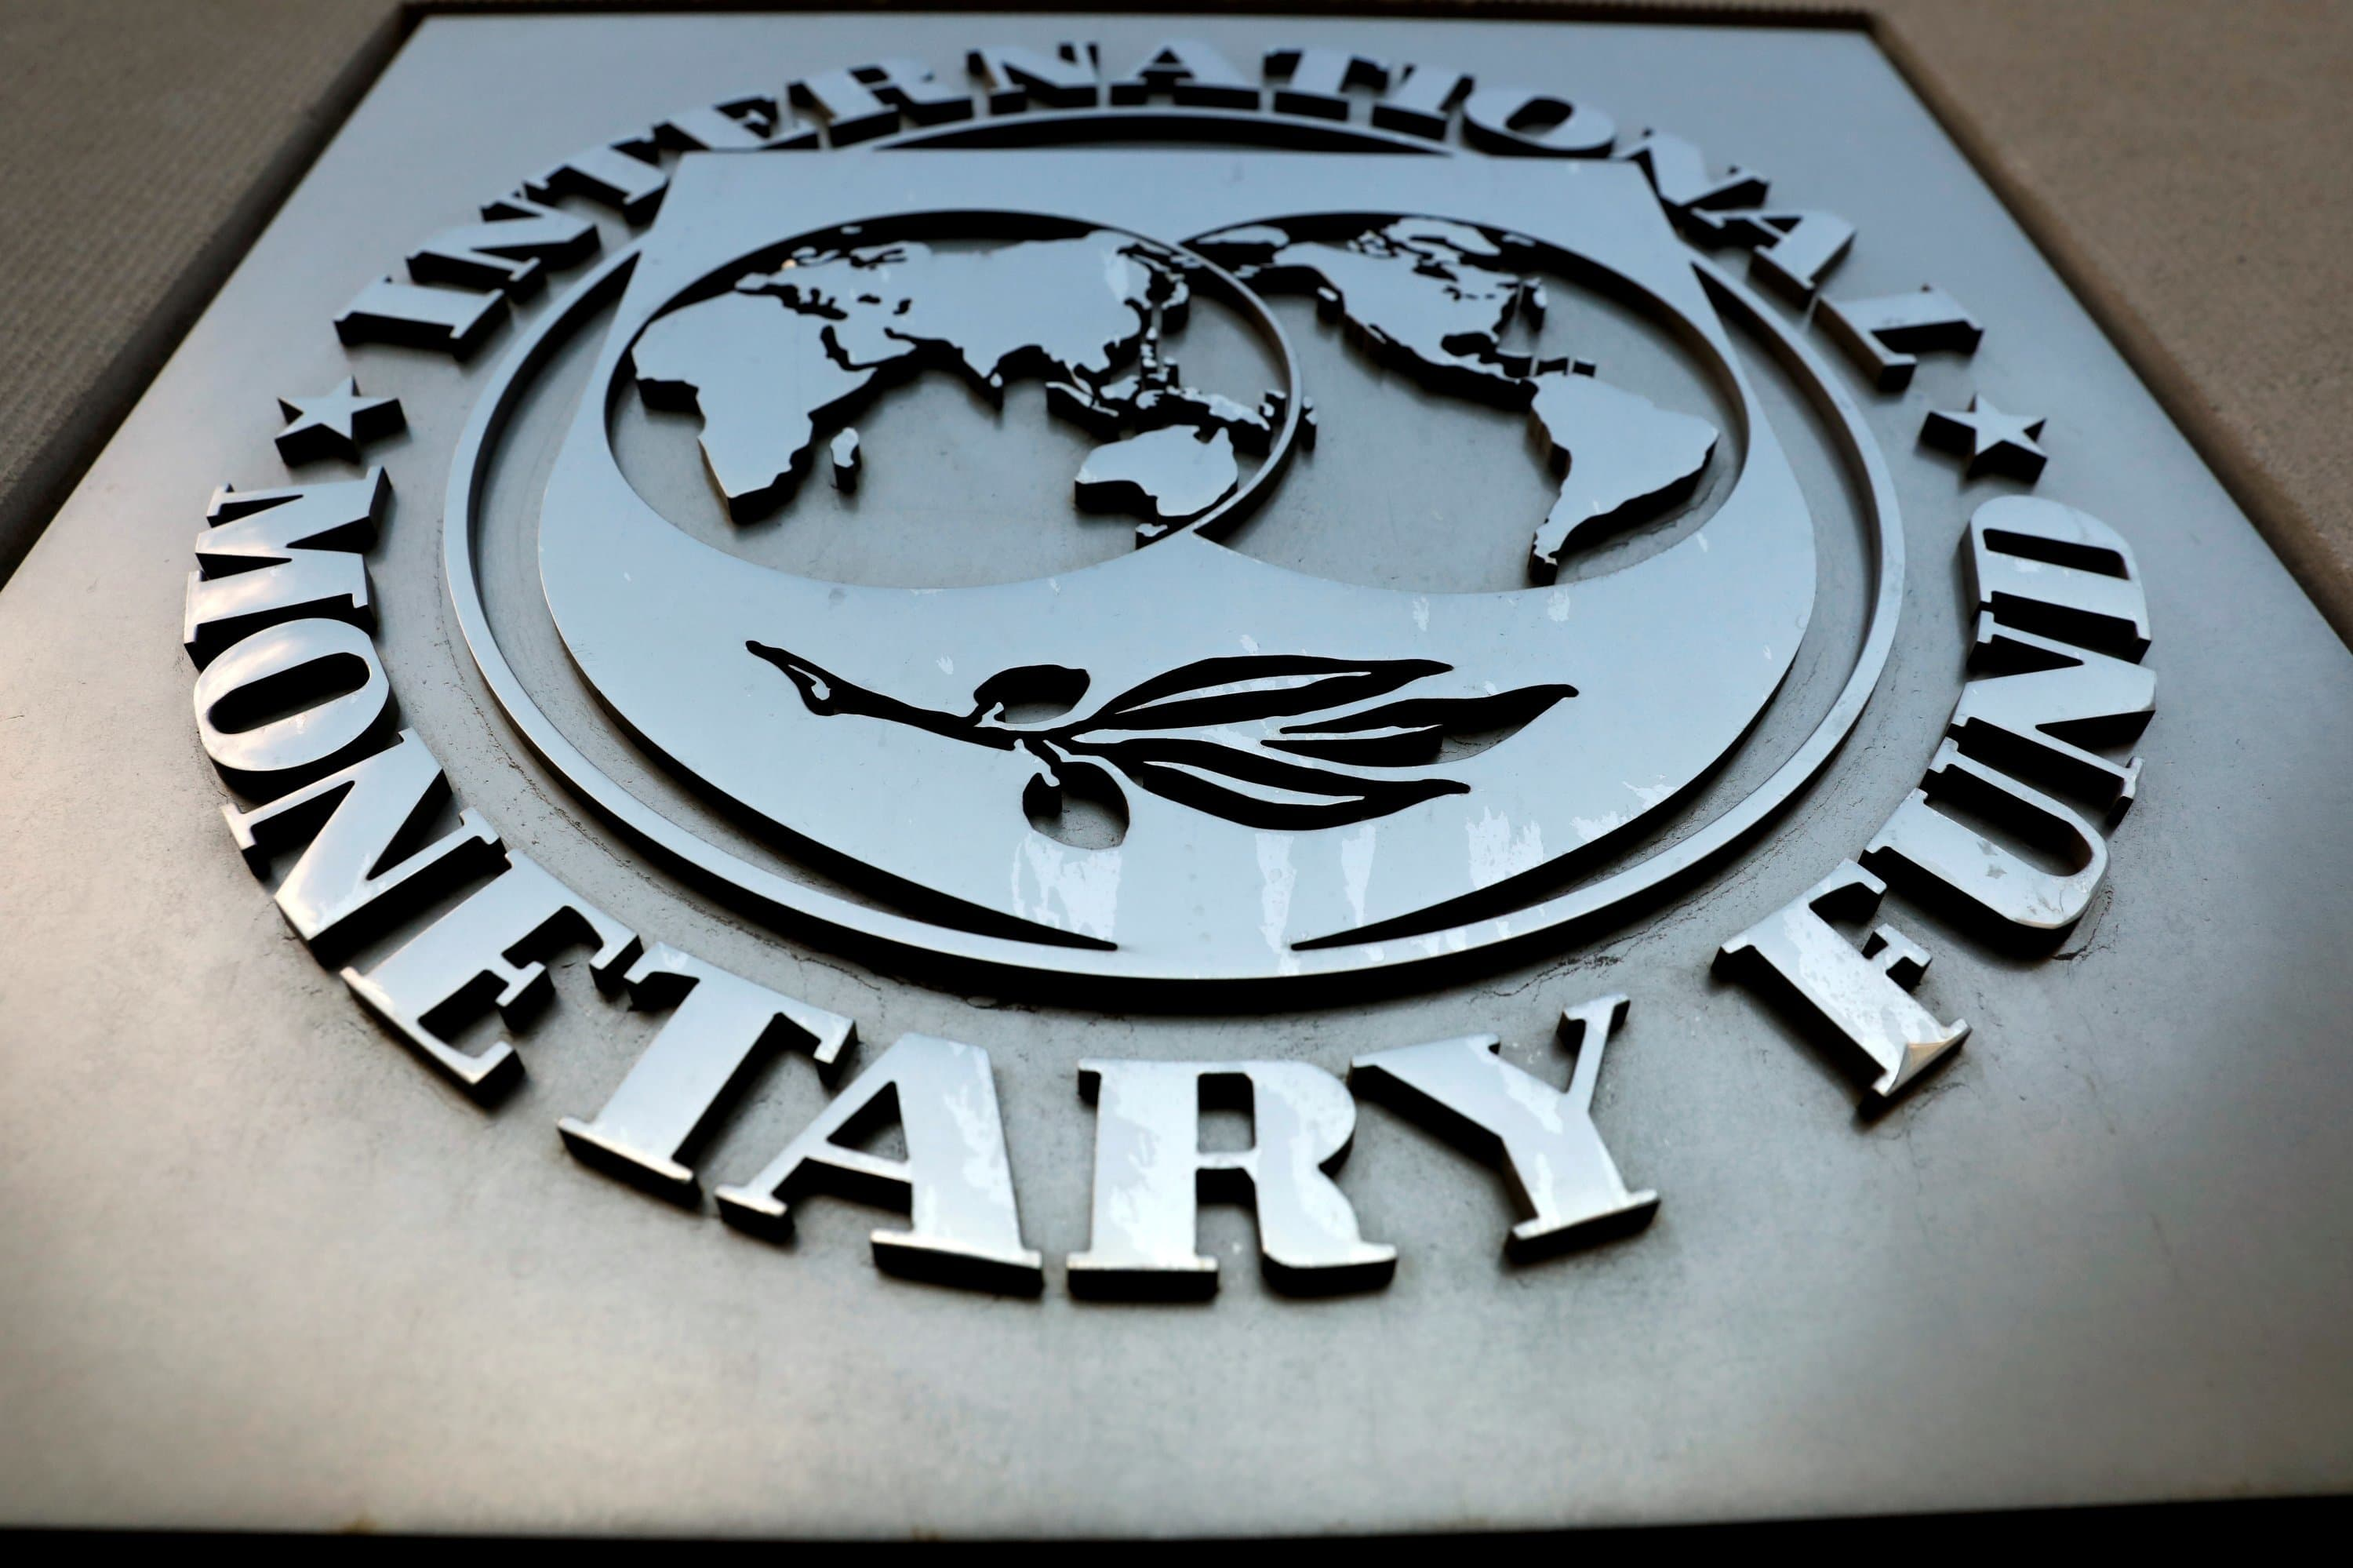 IMF MD Kristalina Georgieva said the allocation is a significant shot in the arm for the world. File photo